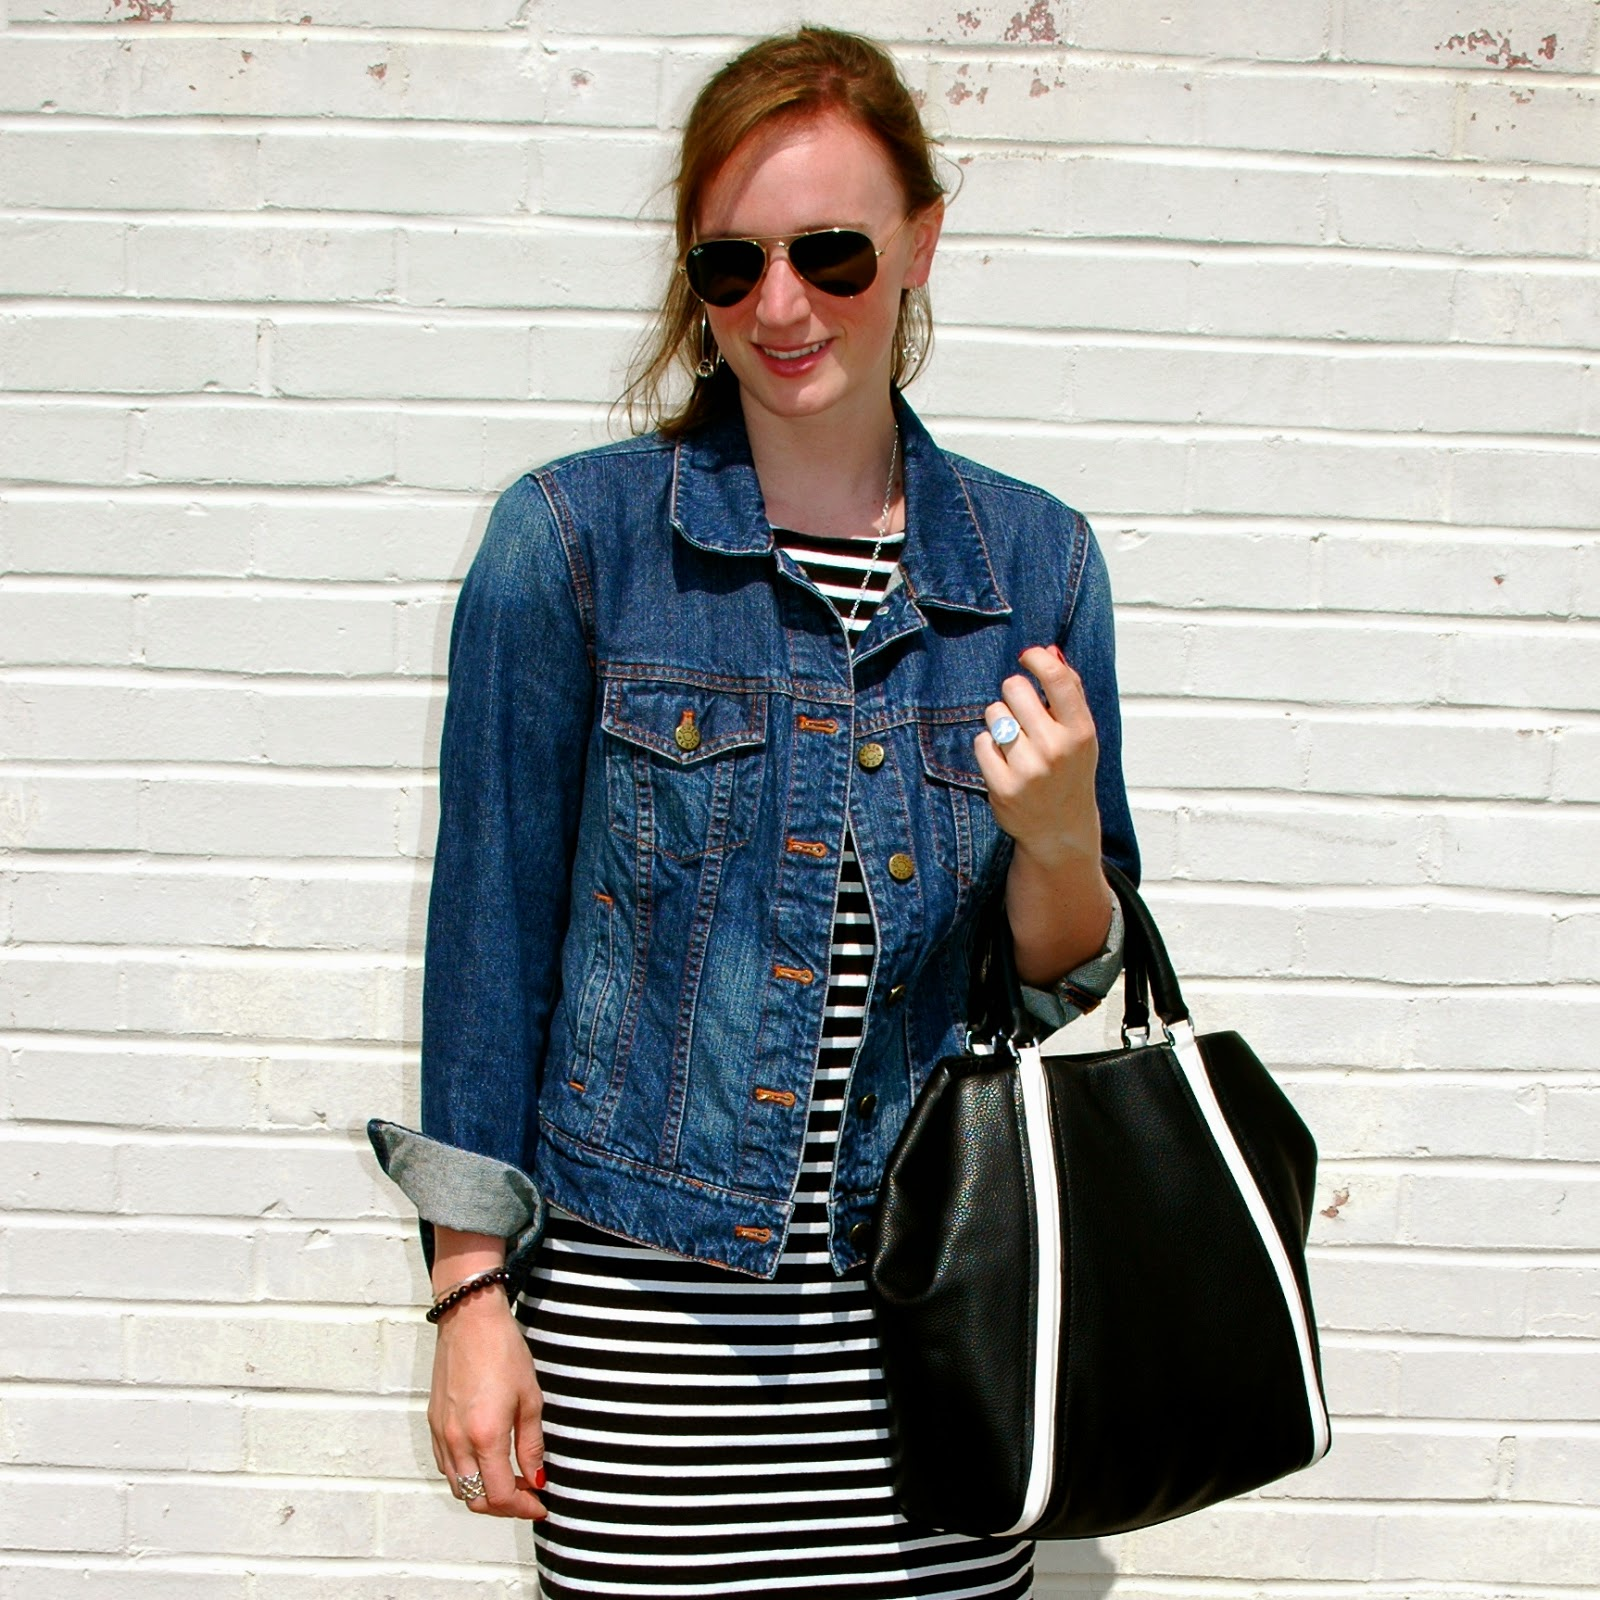 Sanctuary Black and White Striped Dress, Gap Denim Jacket, Marc by Marc Jacobs Q Bag, Raybans